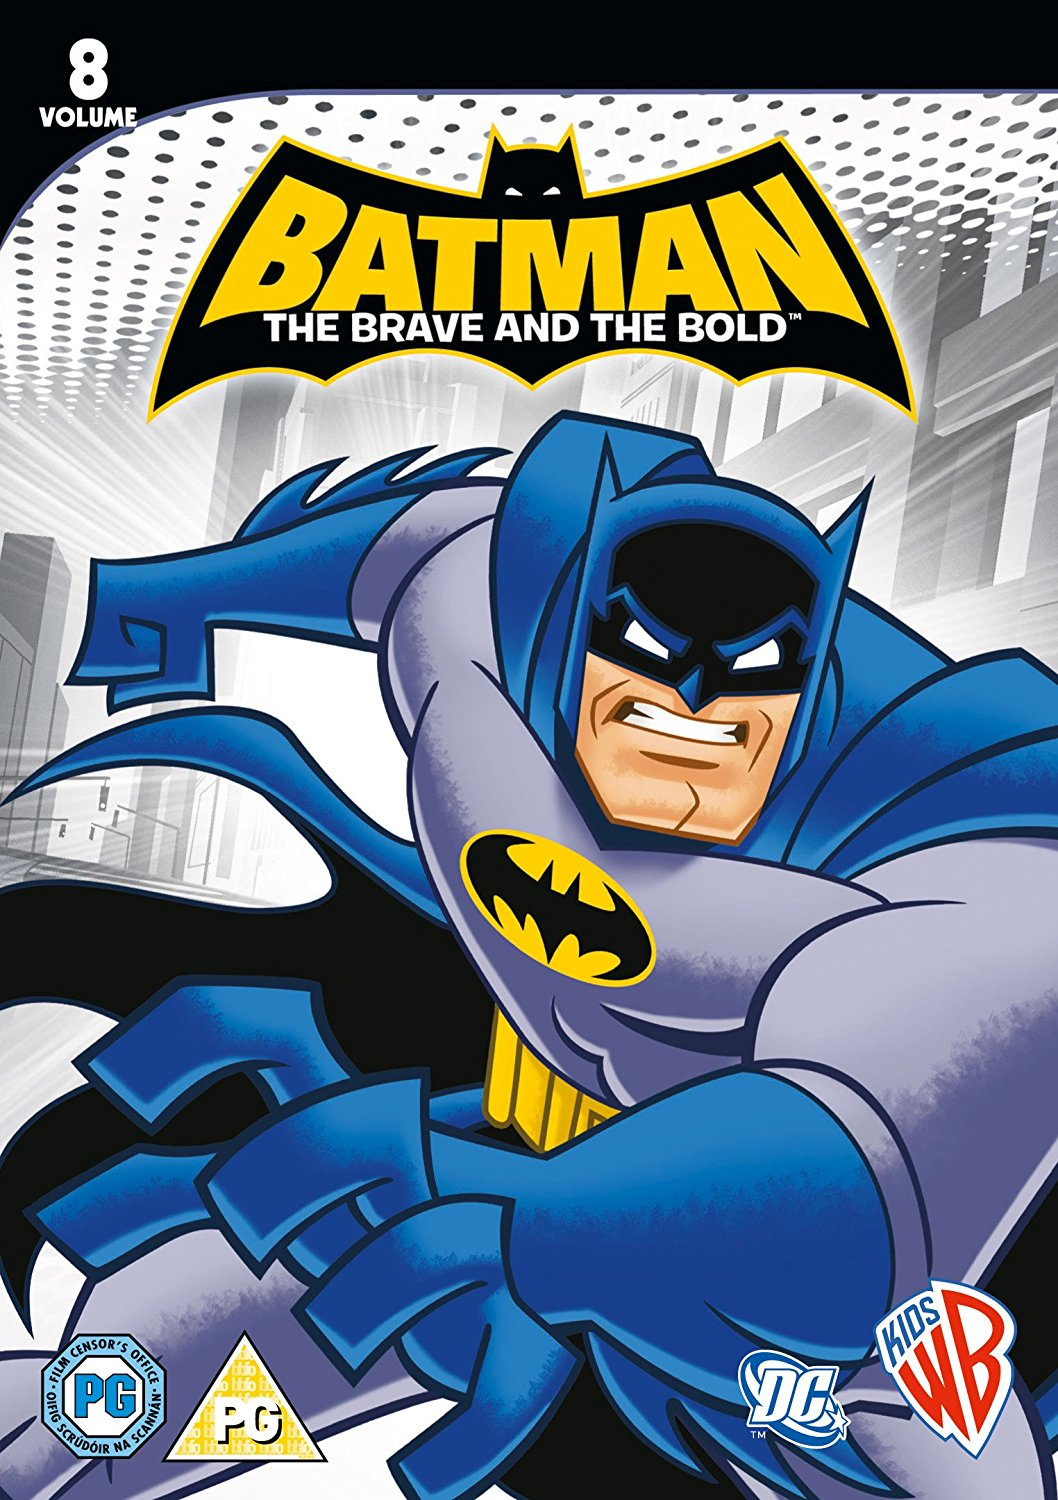 Batman - The Brave and the Bold Vol 8